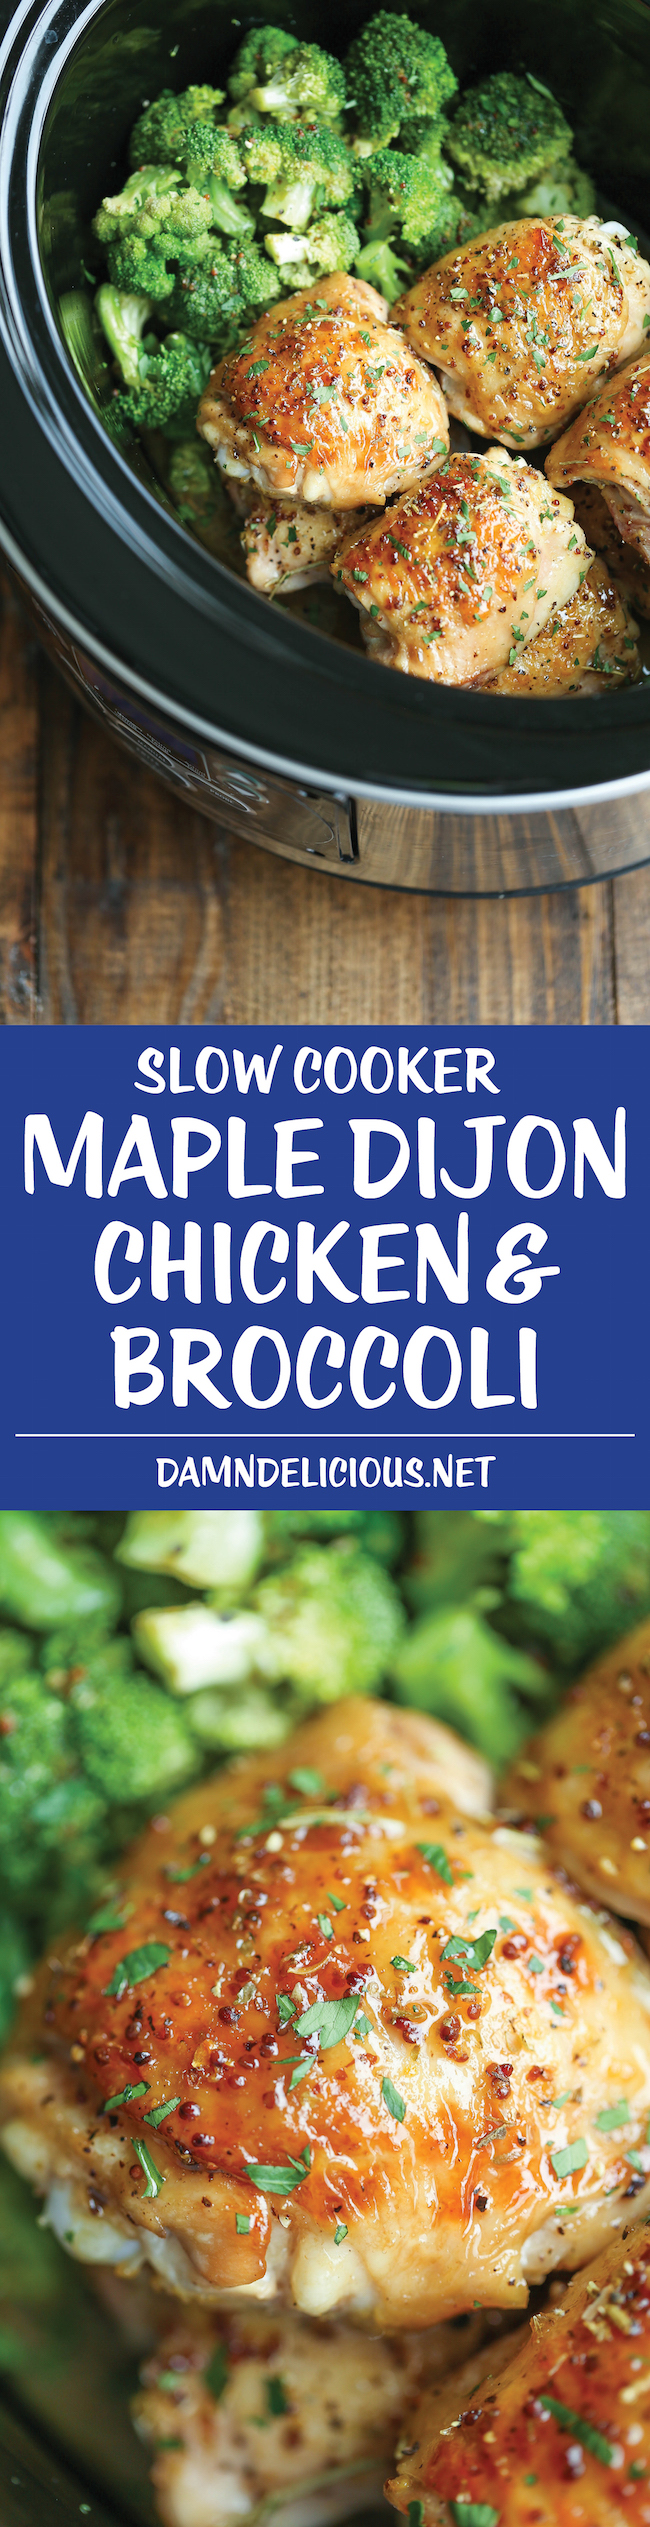 slow cooker bbq chicken slow cooker chicken adobo slow cooker garlic ...